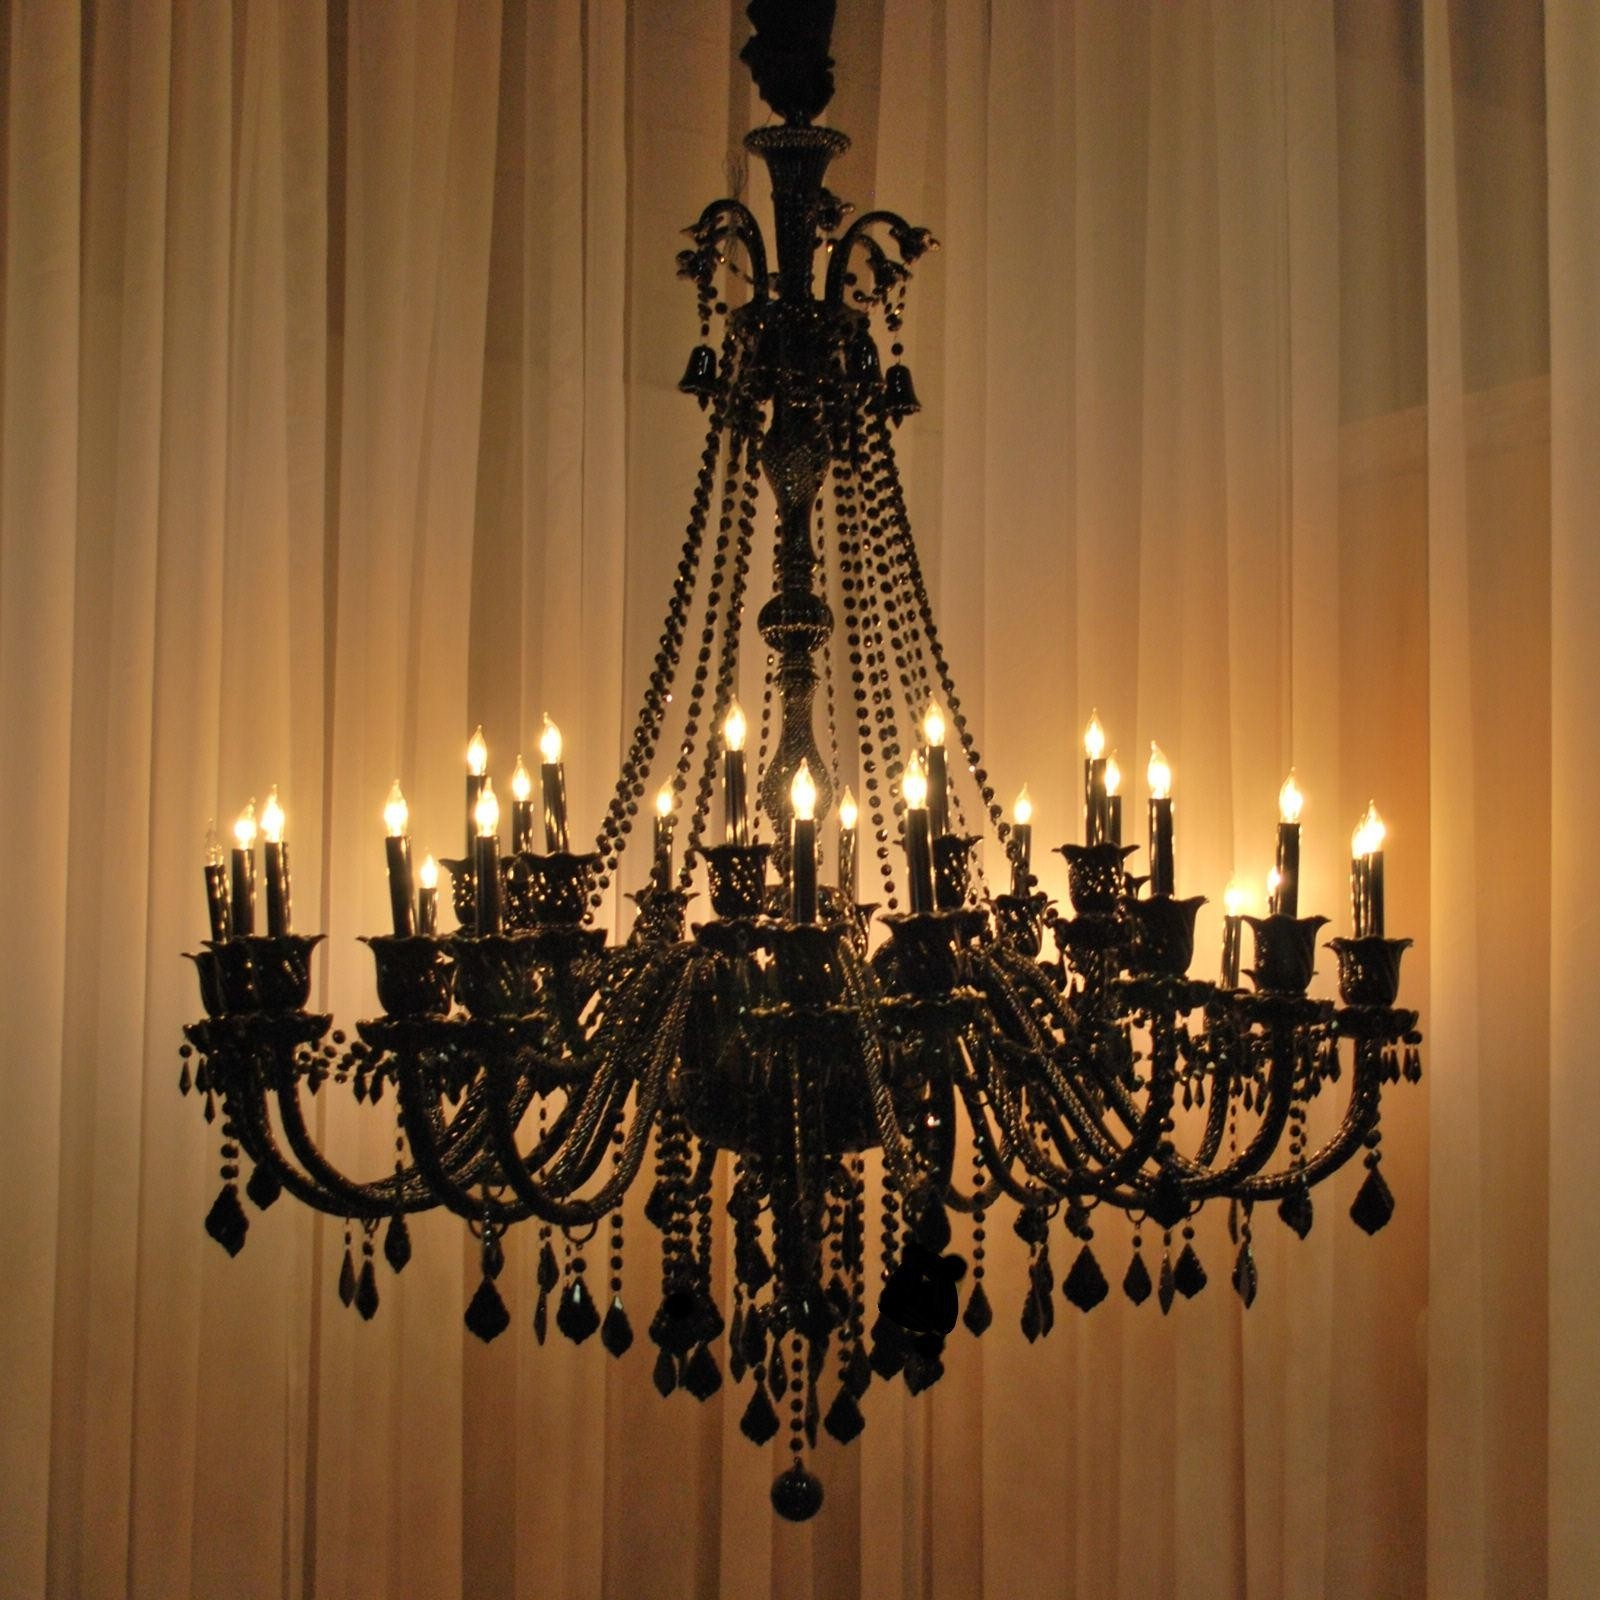 Big Modern Chandeliers Types And Location Lamp World In Big Chandeliers (#6 of 12)